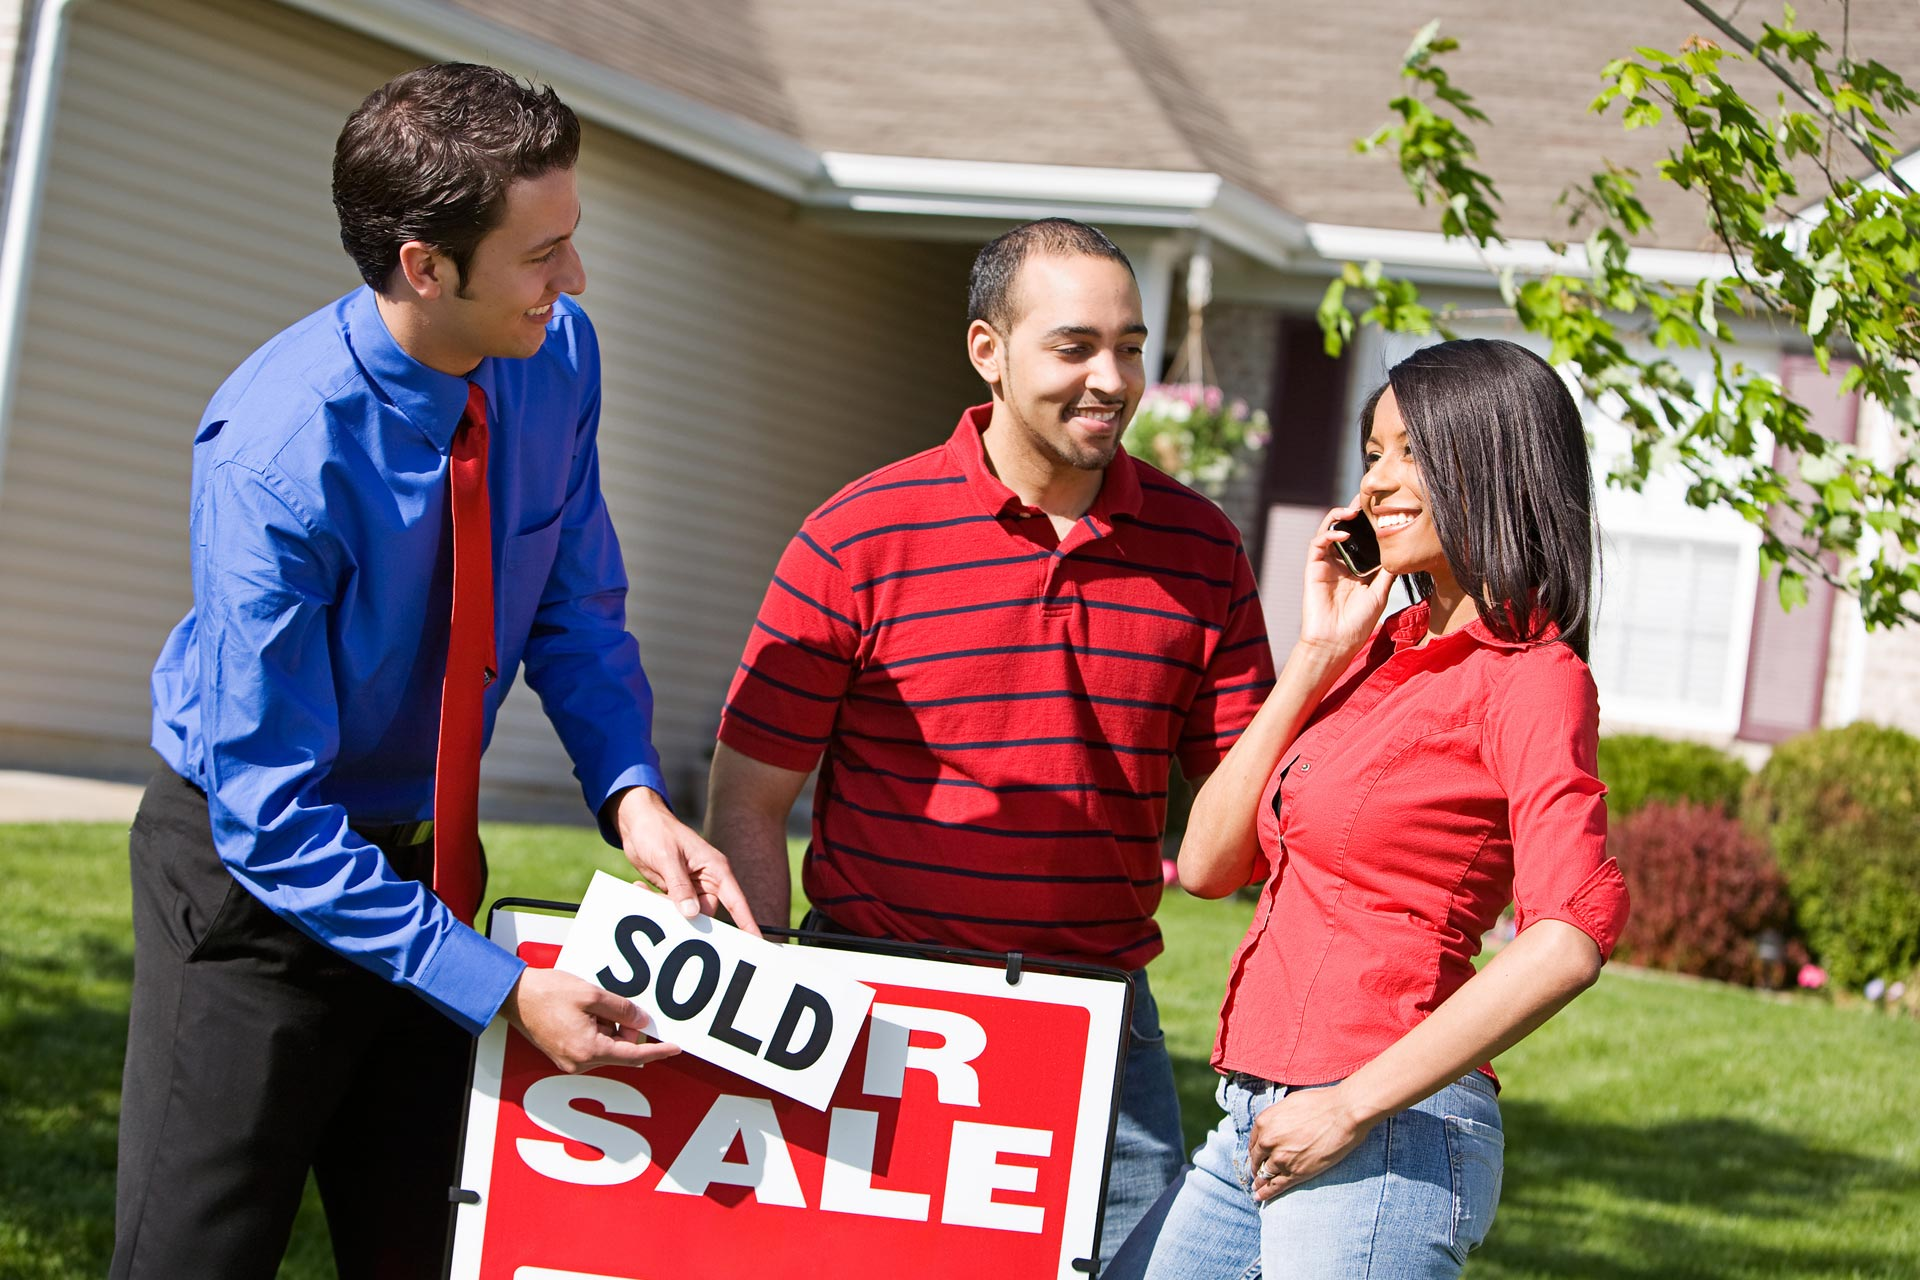 Agent and happy new home owners next to a sold sign